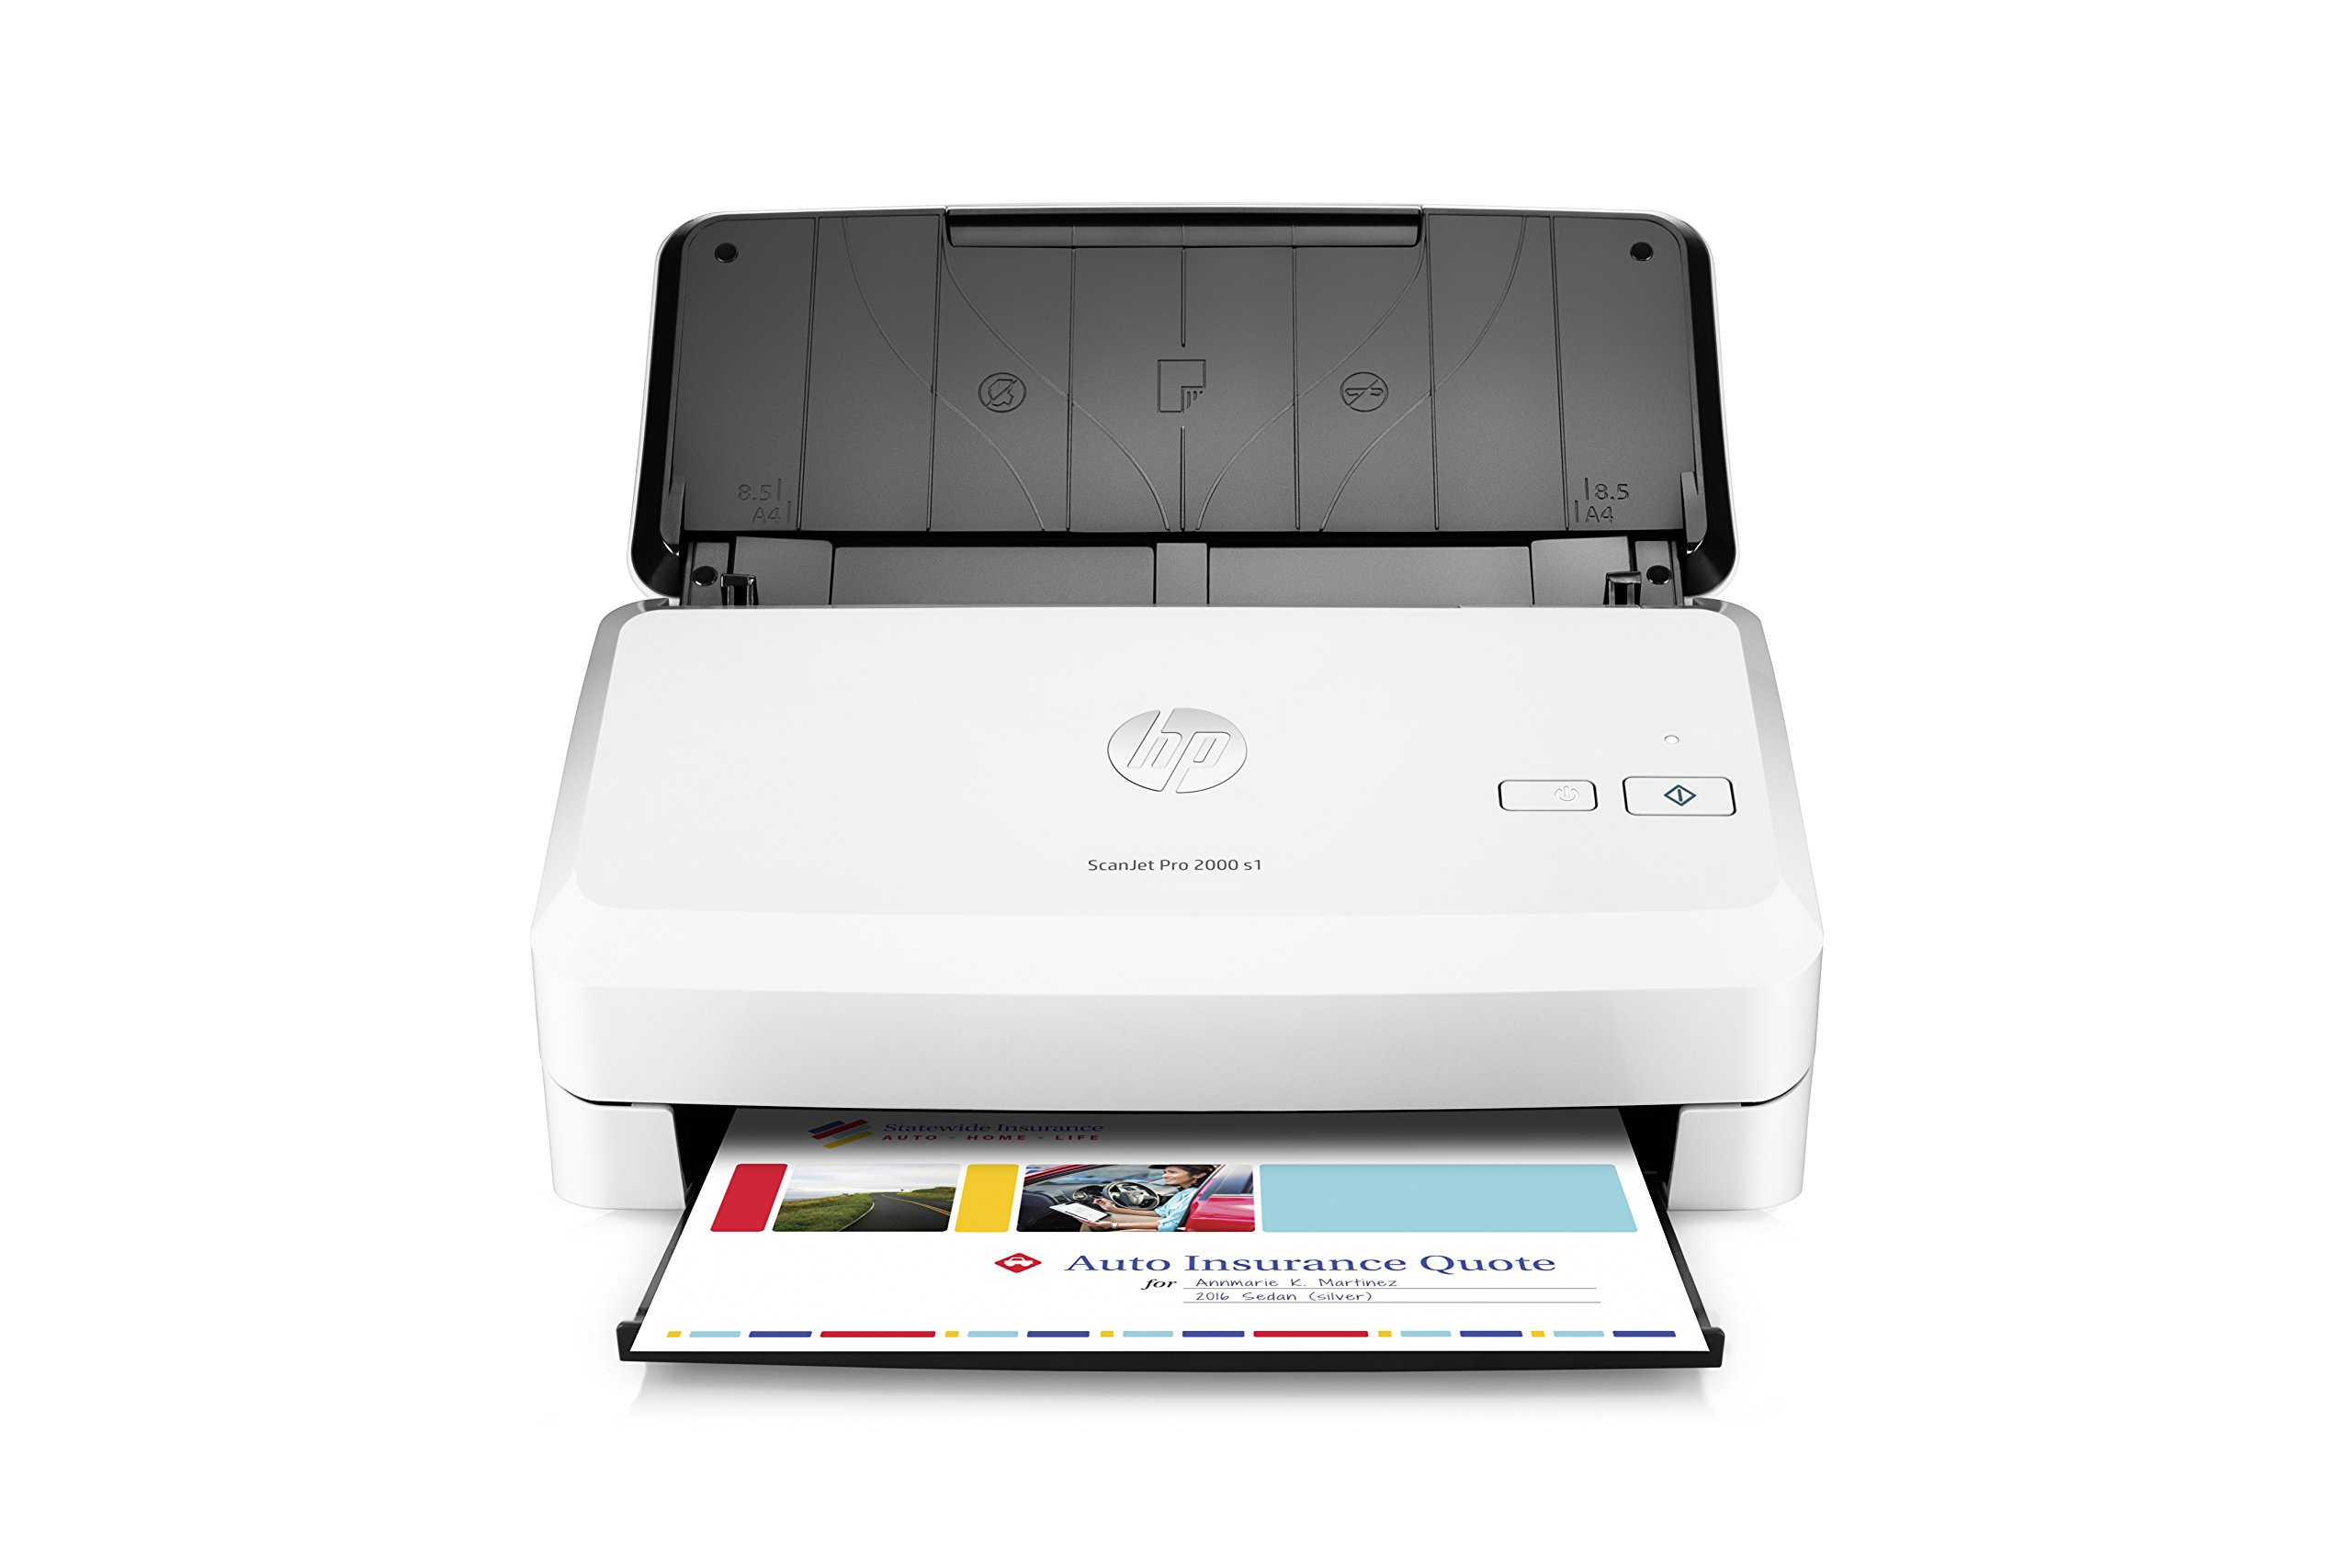 HP ScanJet Pro 2000 s1 Sheet-feed OCR Scanner